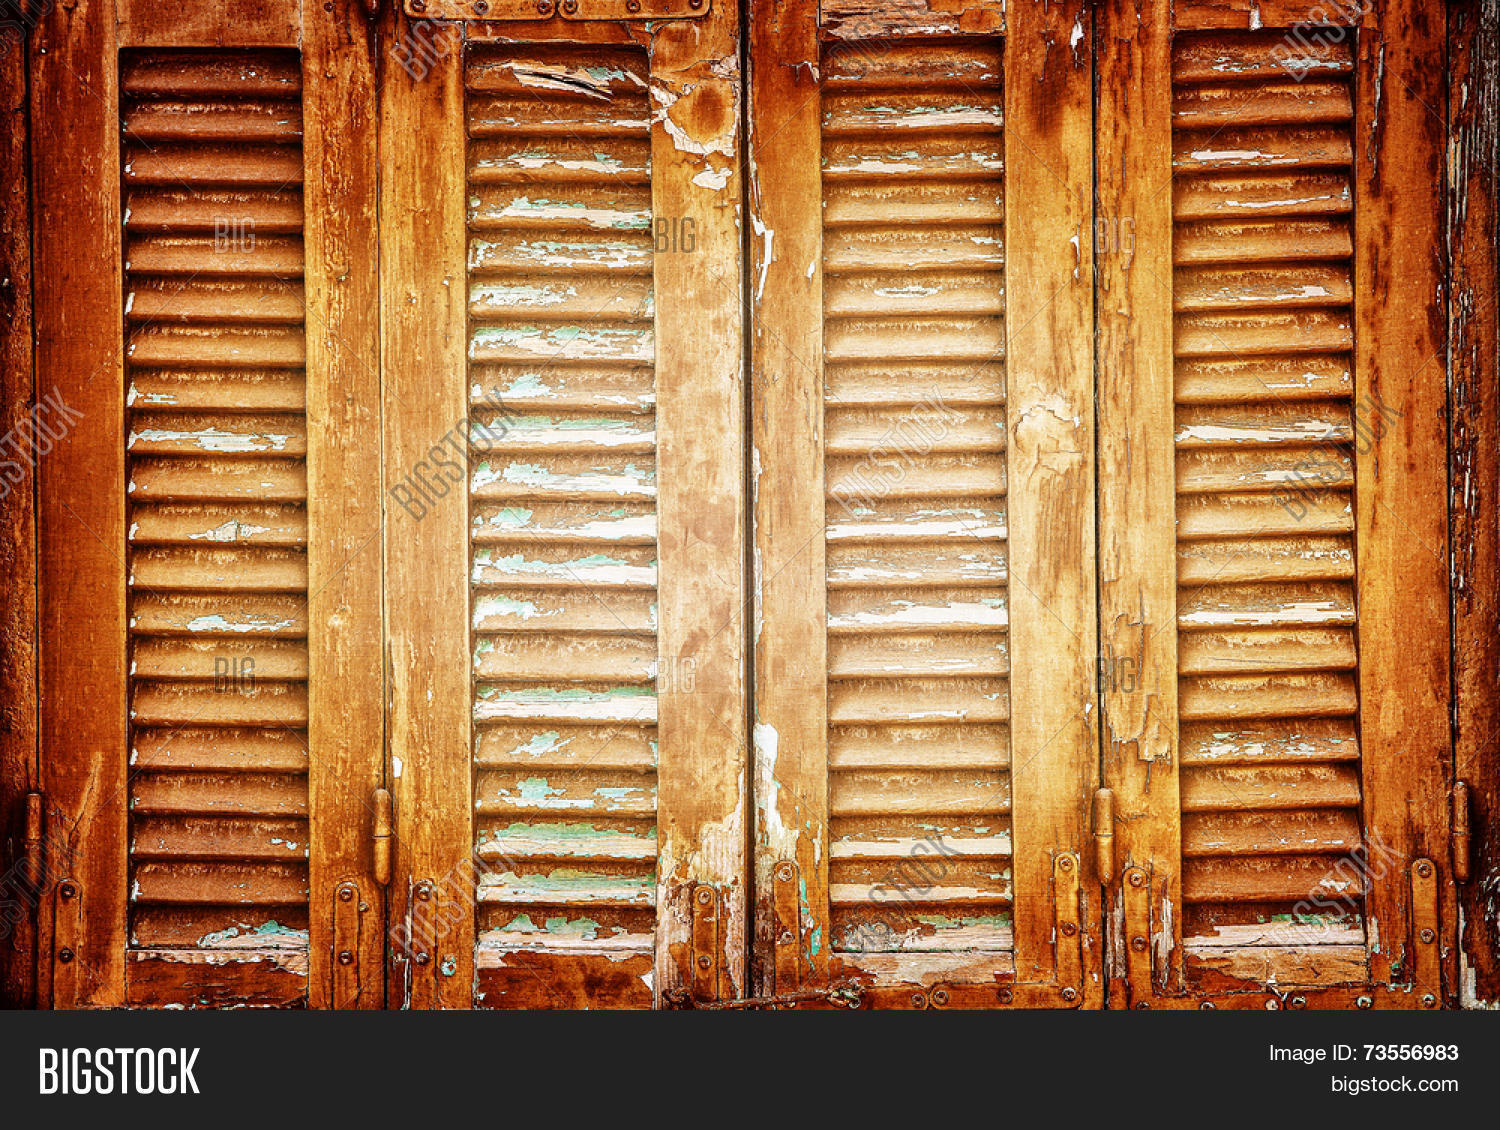 Wood Shutters Closed : Vintage windows shutters background image photo bigstock